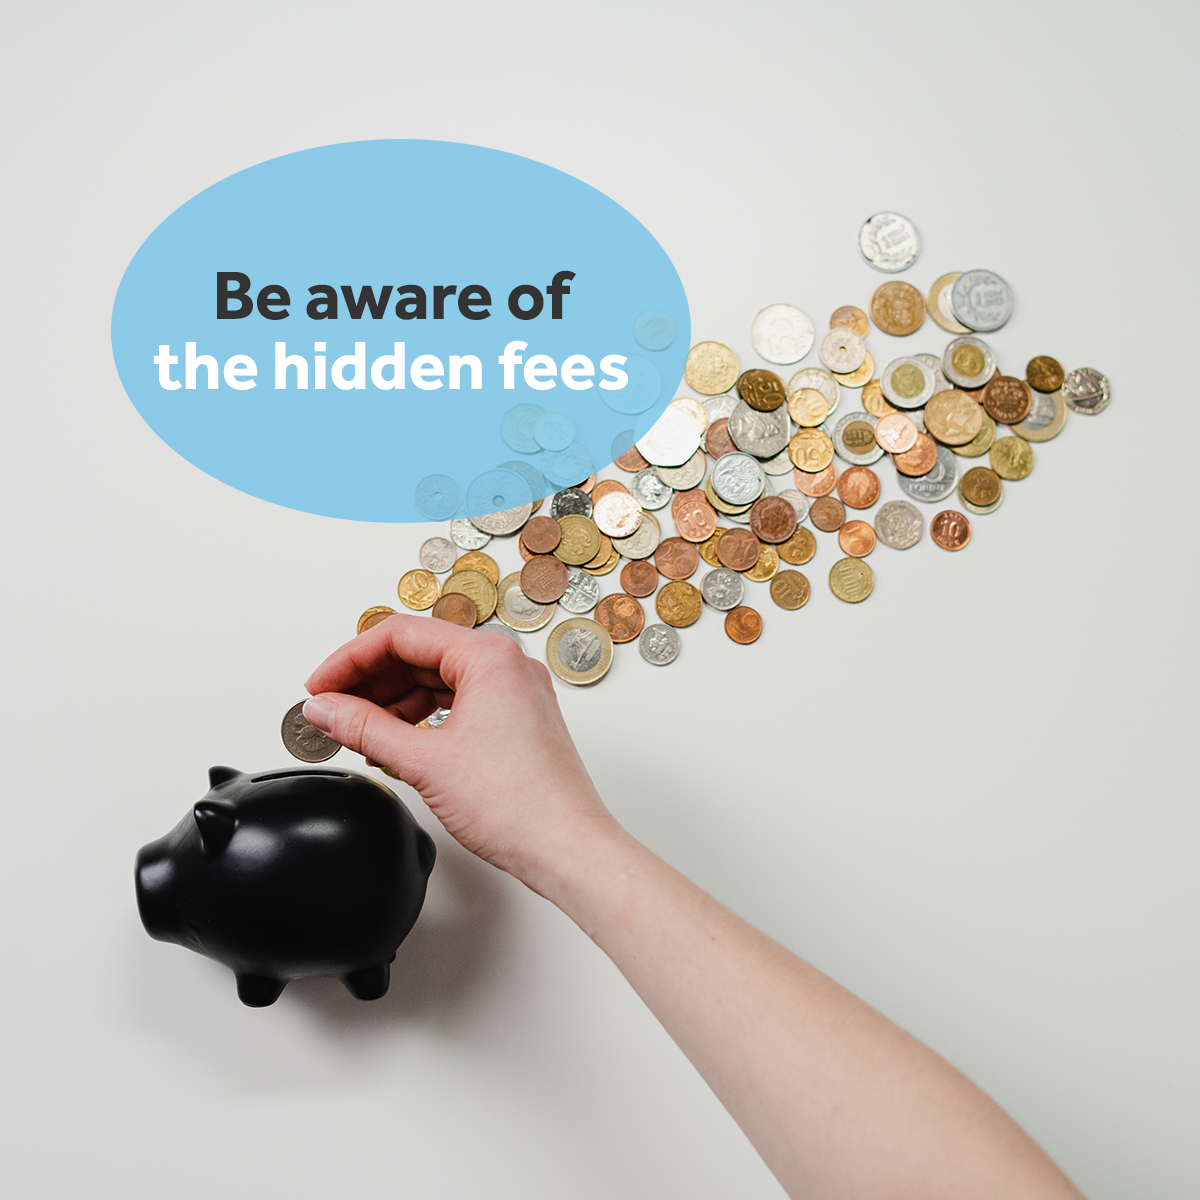 Stay aware of fees that could be imposed by landlord